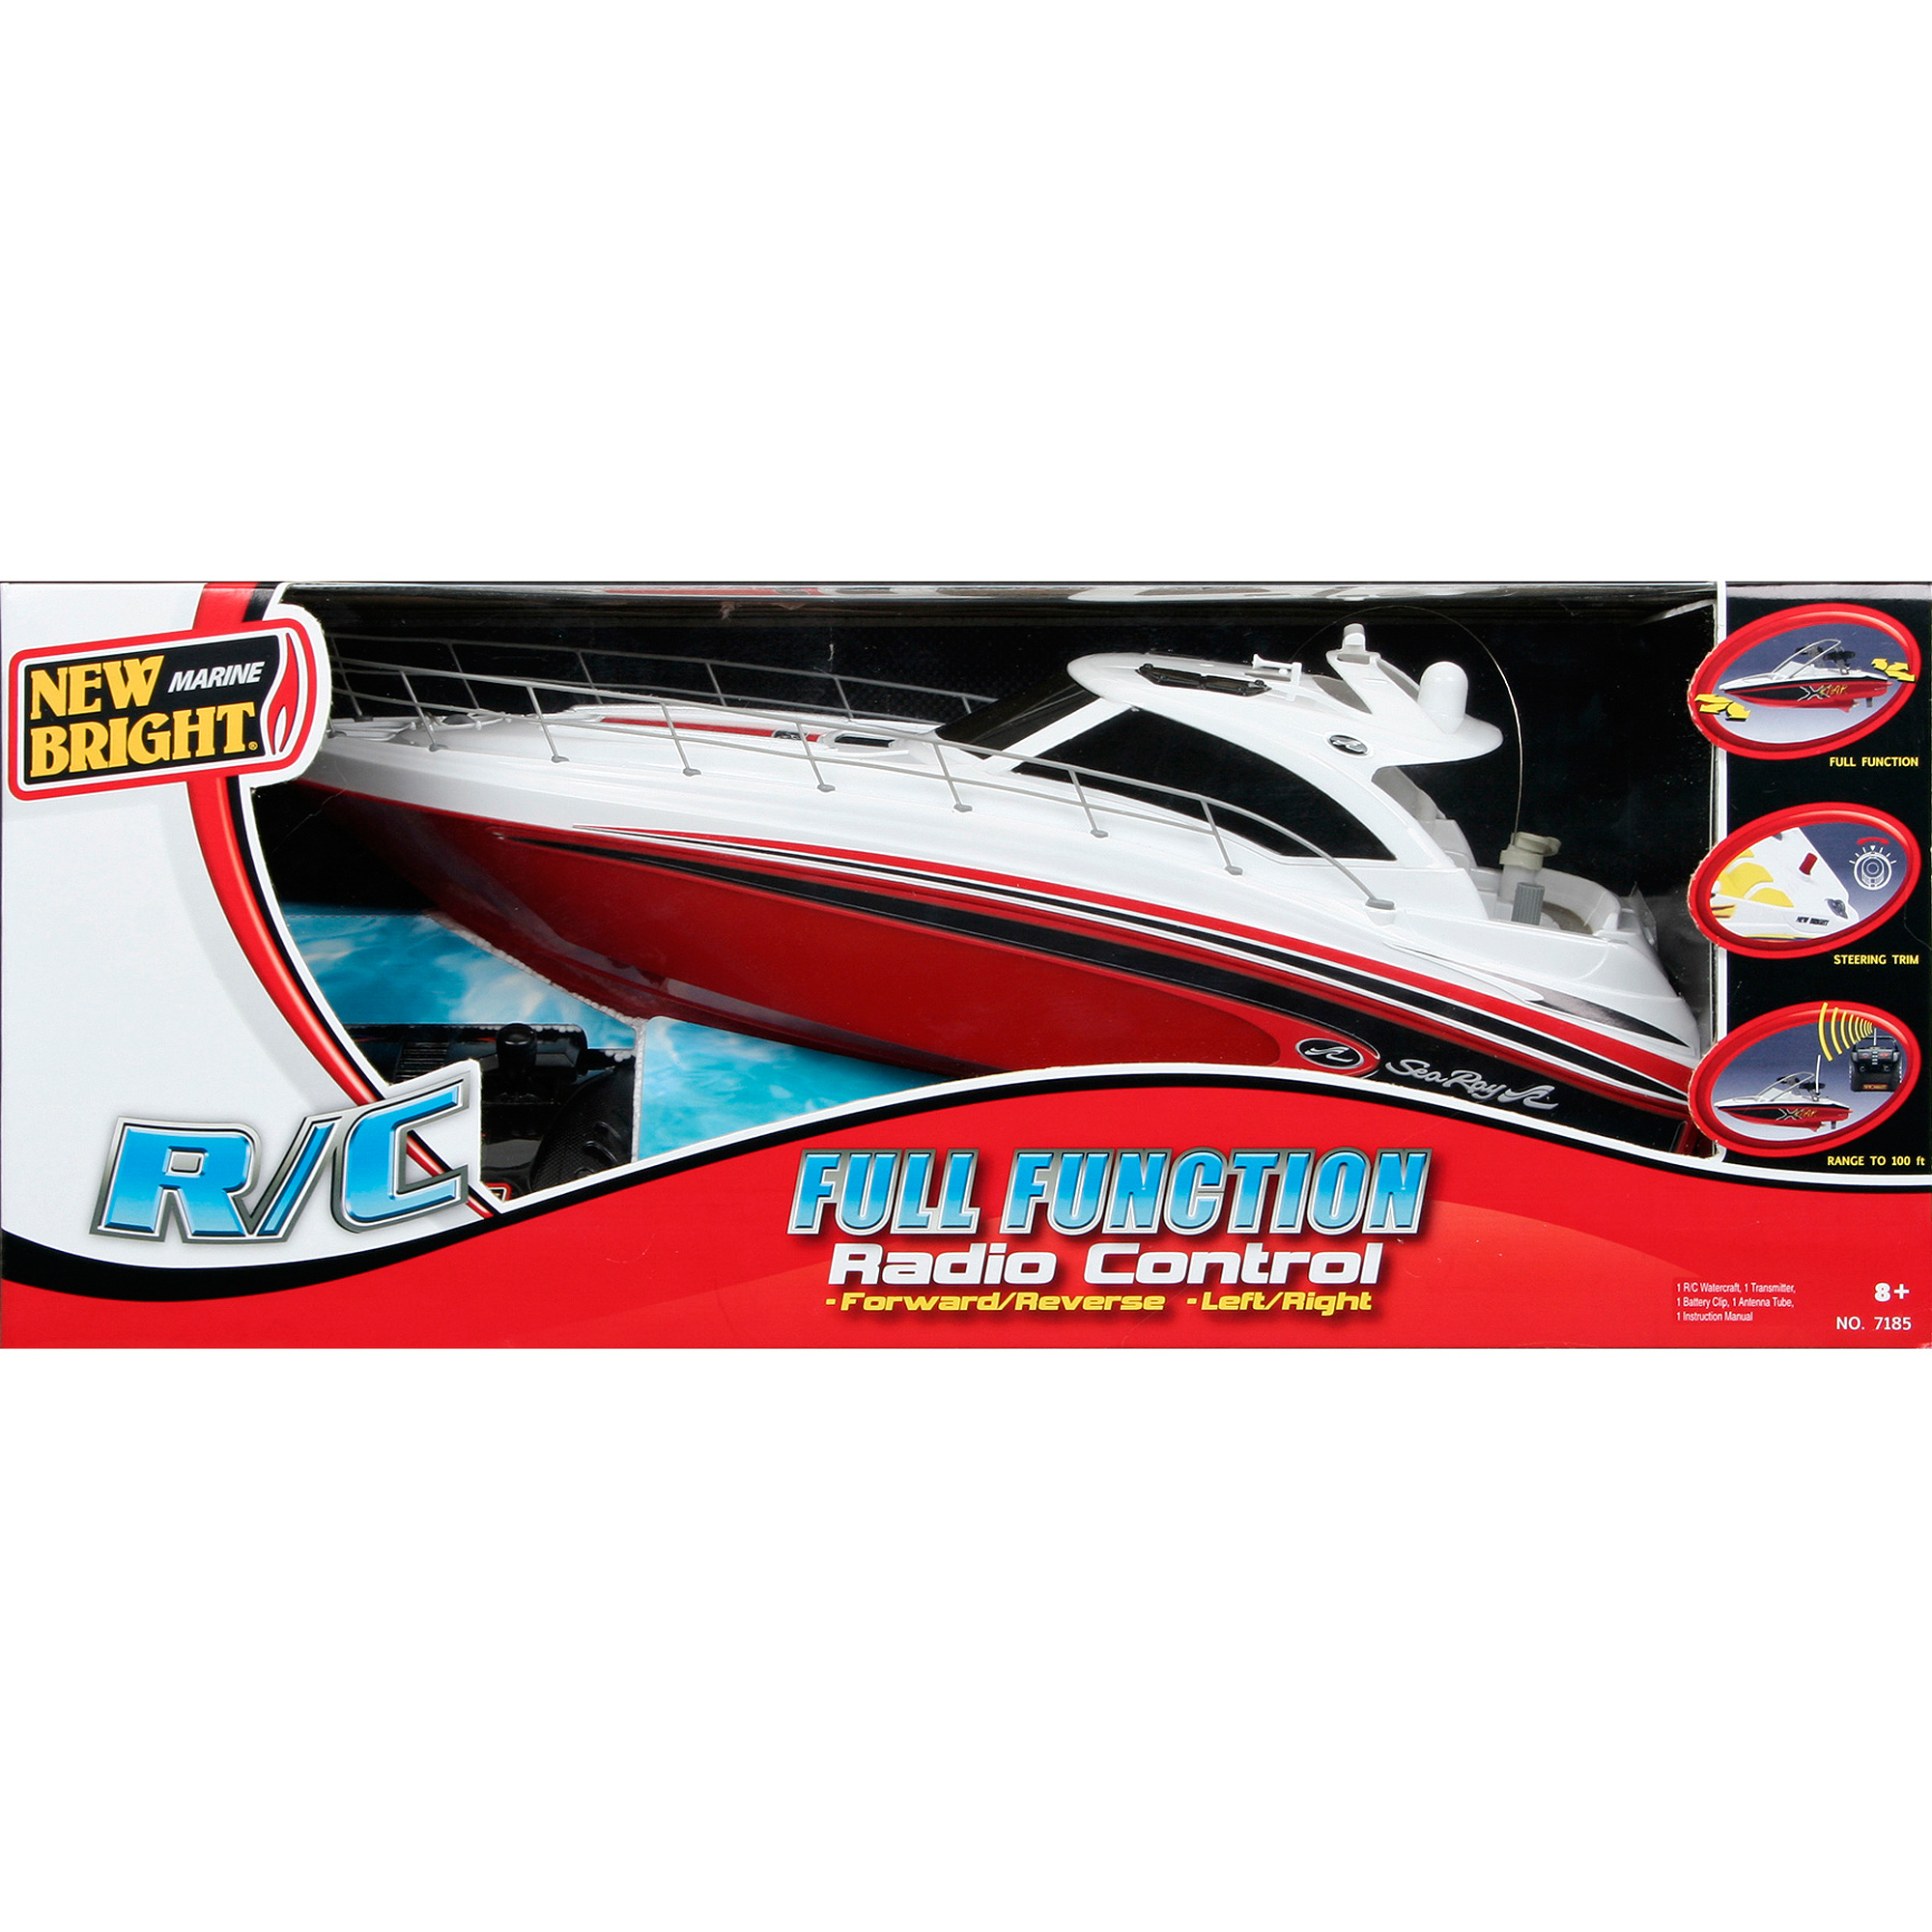 """New Bright 18"""" Radio Control Full-Function Sea Ray Boat, Red"""